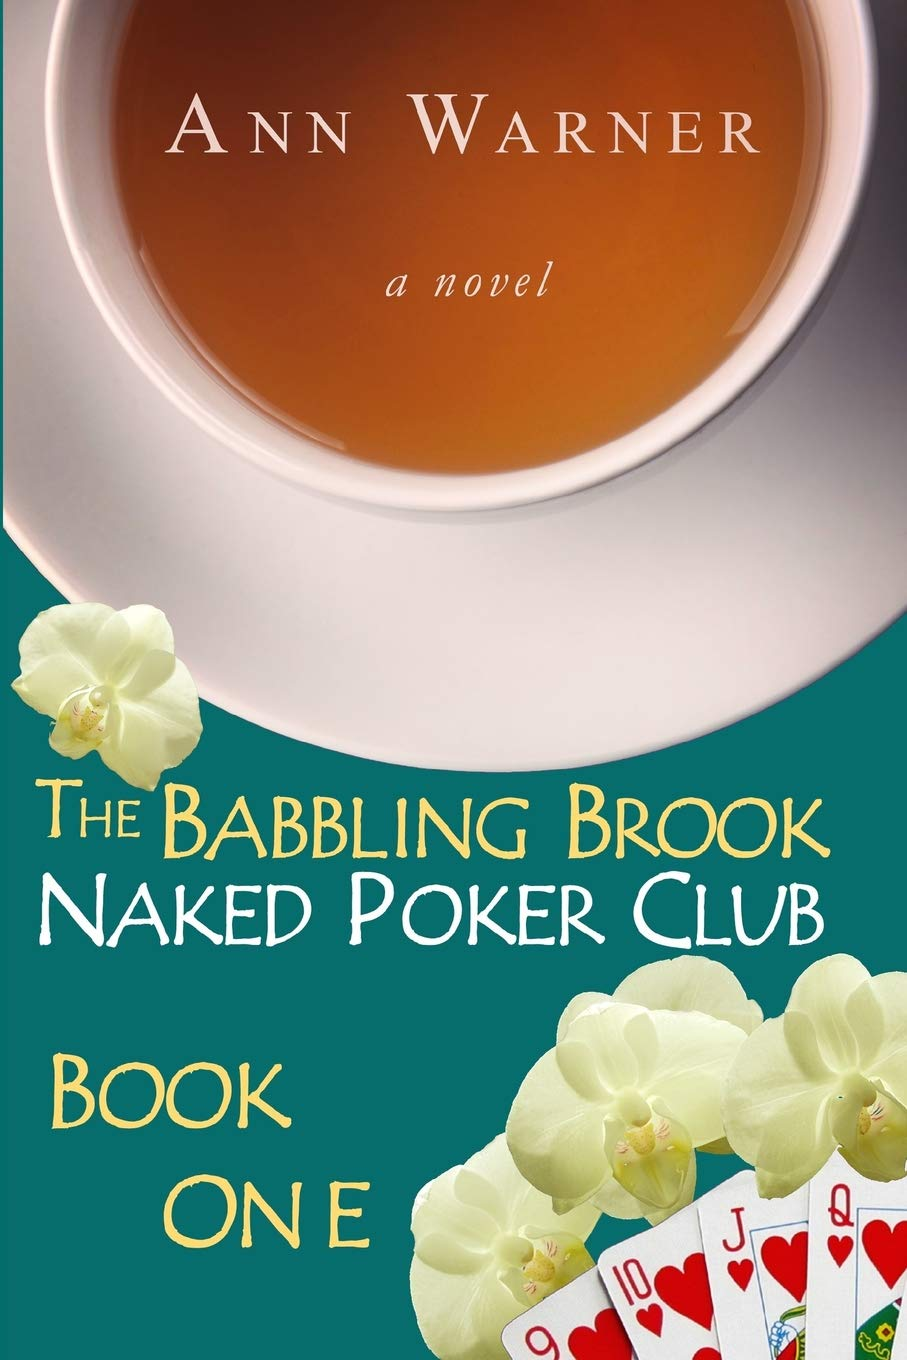 Download The Babbling Brook Naked Poker Club - Book One (The Babbling Brook Naked Poker Club Series) (Volume 1) pdf